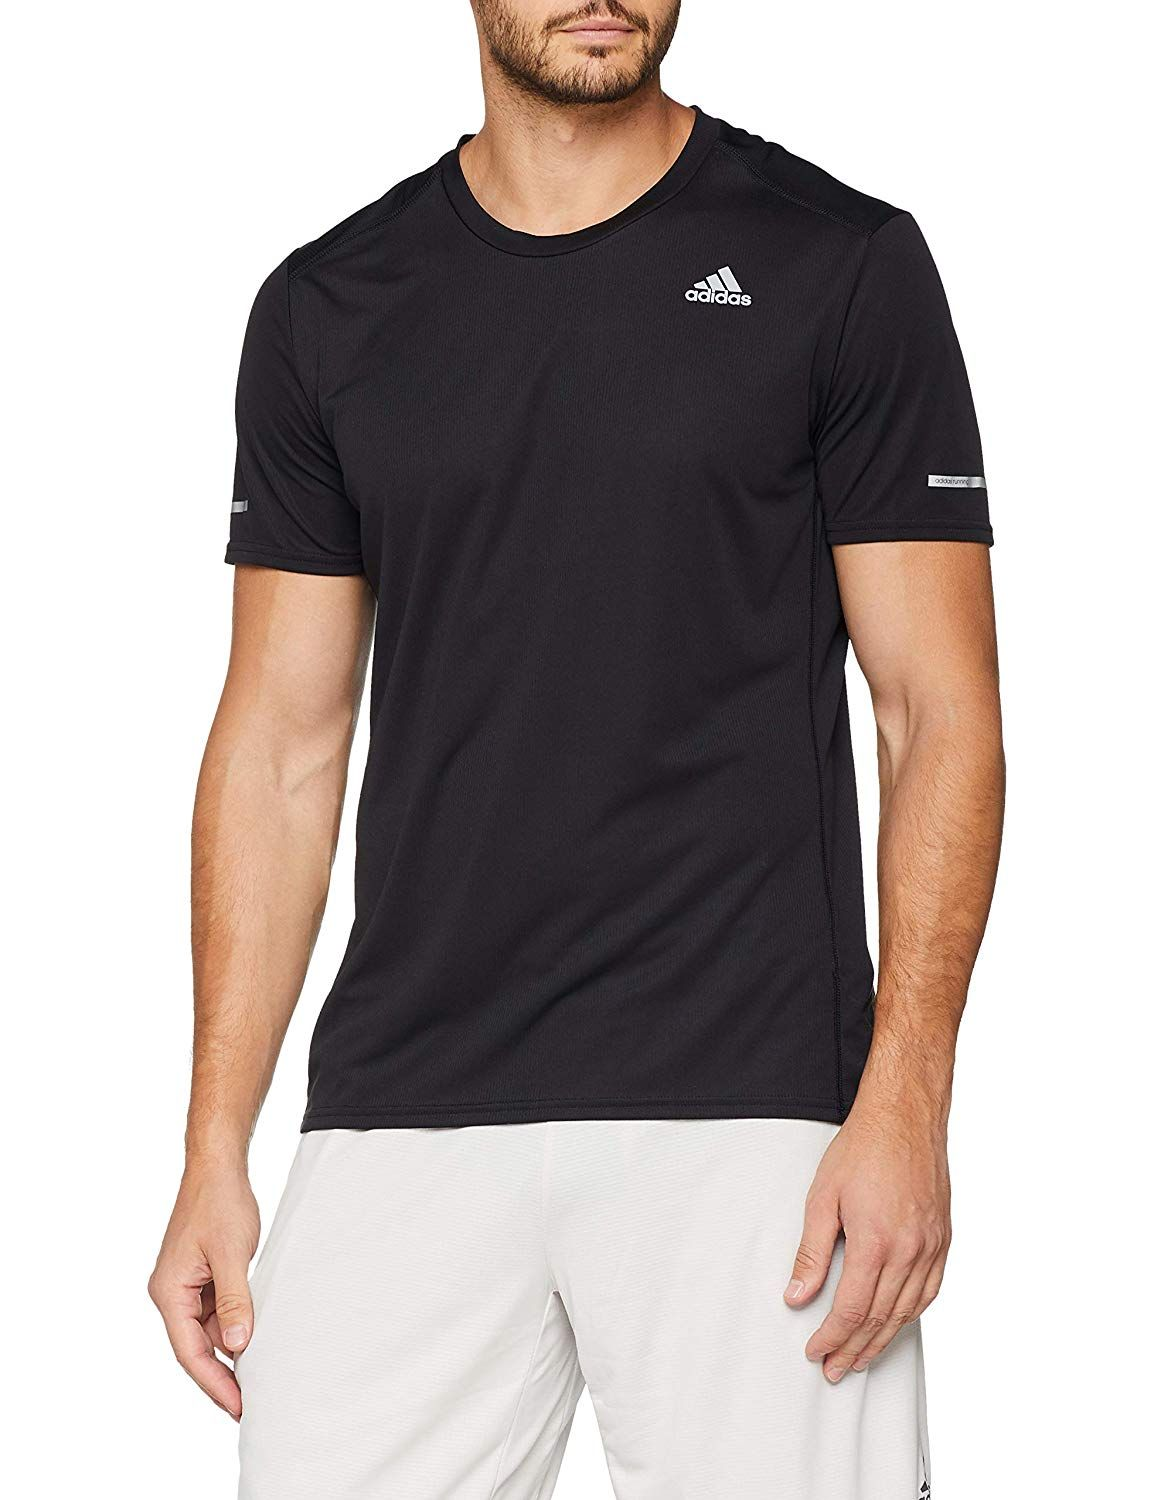 ec854fa70c0a1 Adidas Men's Running Tshirt: Amazon.in: Clothing & Accessories | 1 ...